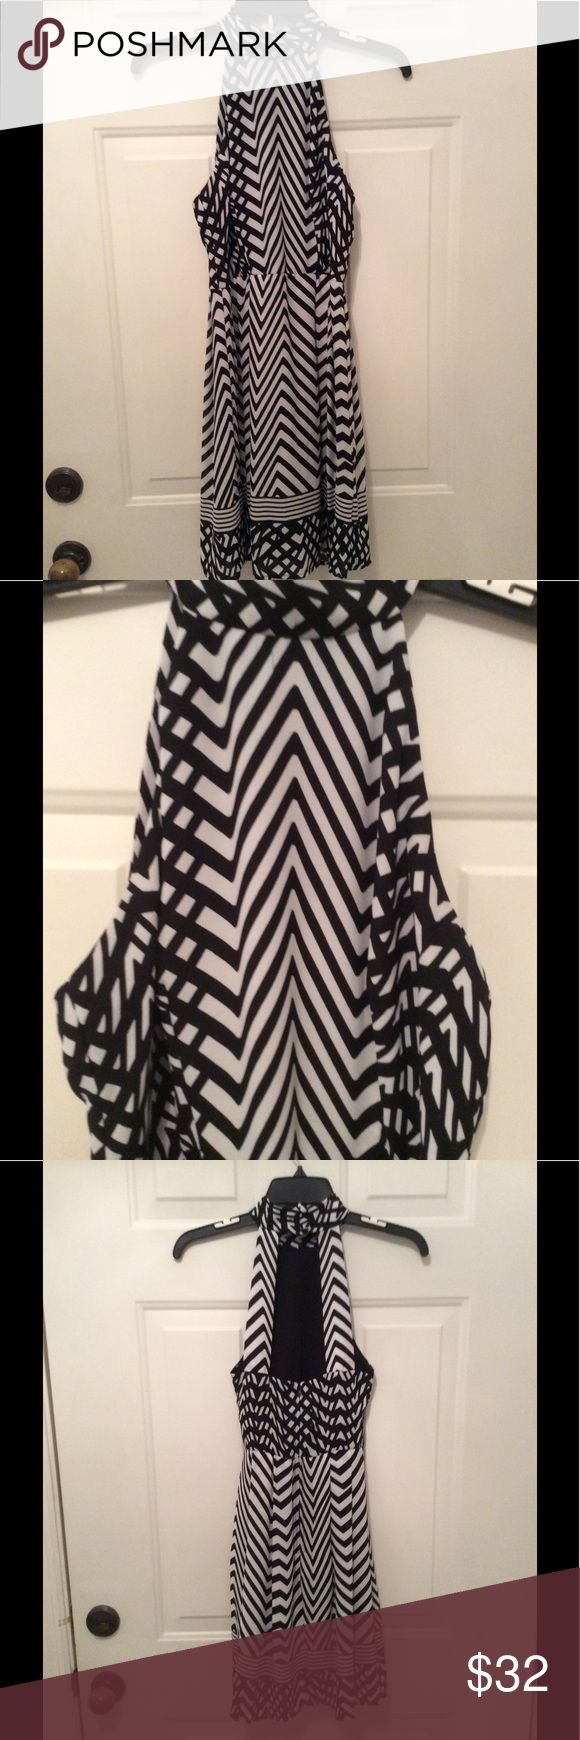 🌺B. SMART DRESS WITH BLACK AND WHITE DESIGN. 🌺 BEAUTIFUL DRESS IN LIKE NEW CONDITION. YOU WILL LOVE IT!  100% POLYESTER AND MACHINE WASHABLE. SEE FRONT AND BACK PICTURES. I LOVE THIS DRESS. B. SMART Dresses